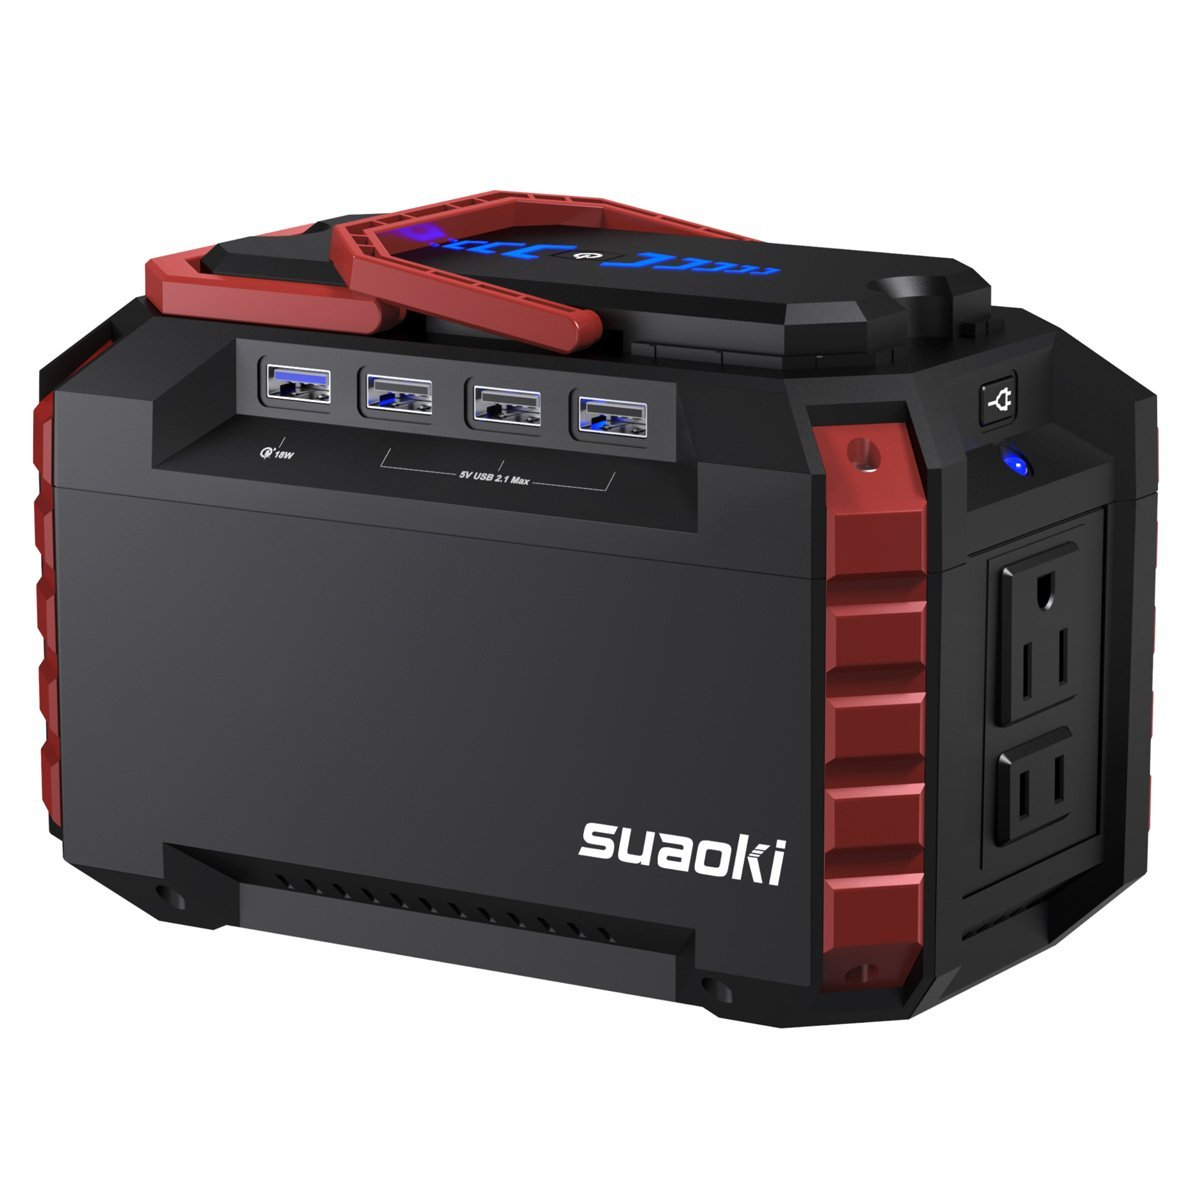 SUAOKI Portable Power Station 150Wh Quiet Gas Free Solar Generator QC3.0 UPS Lithium Power Supply with Dual... by Suaoki